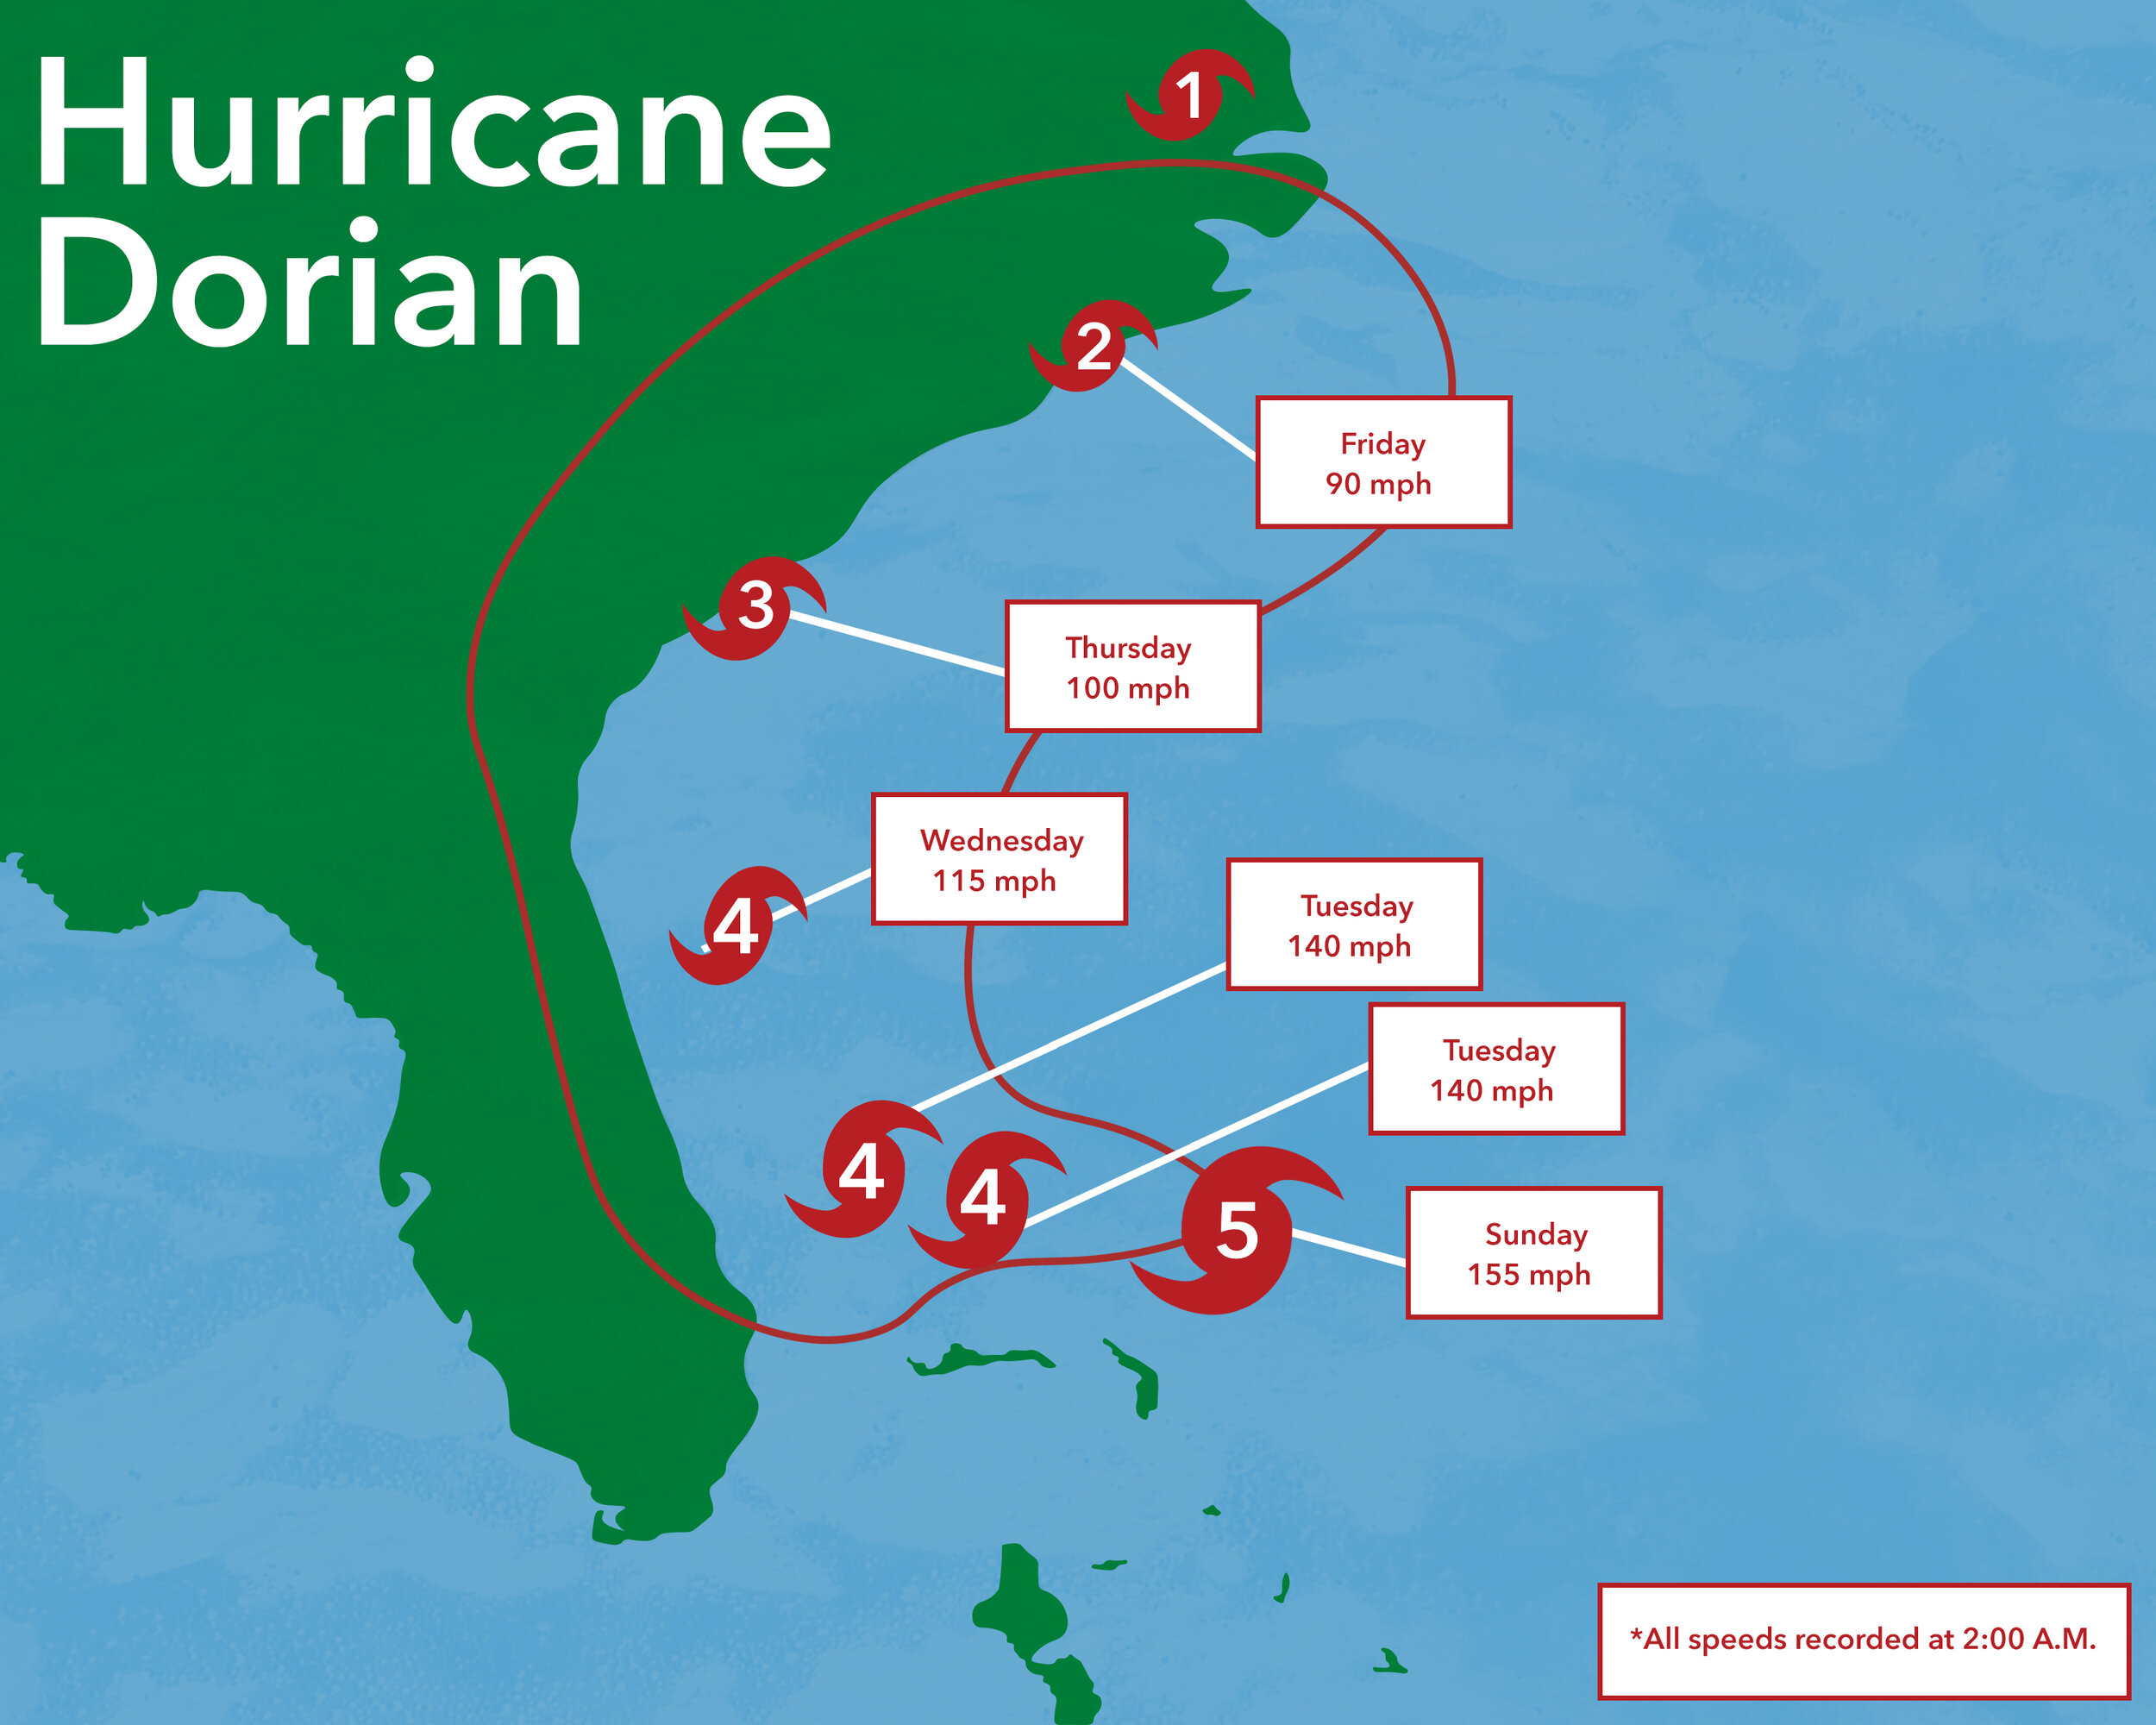 Hurricane Dorian, hitting landfall in the Bahamas on August 24, 2019, was the most powerful cyclone to ever hit the Bahamas. Here is a look at the course the hurricane took as the storm progressed up the east coast on the United States.